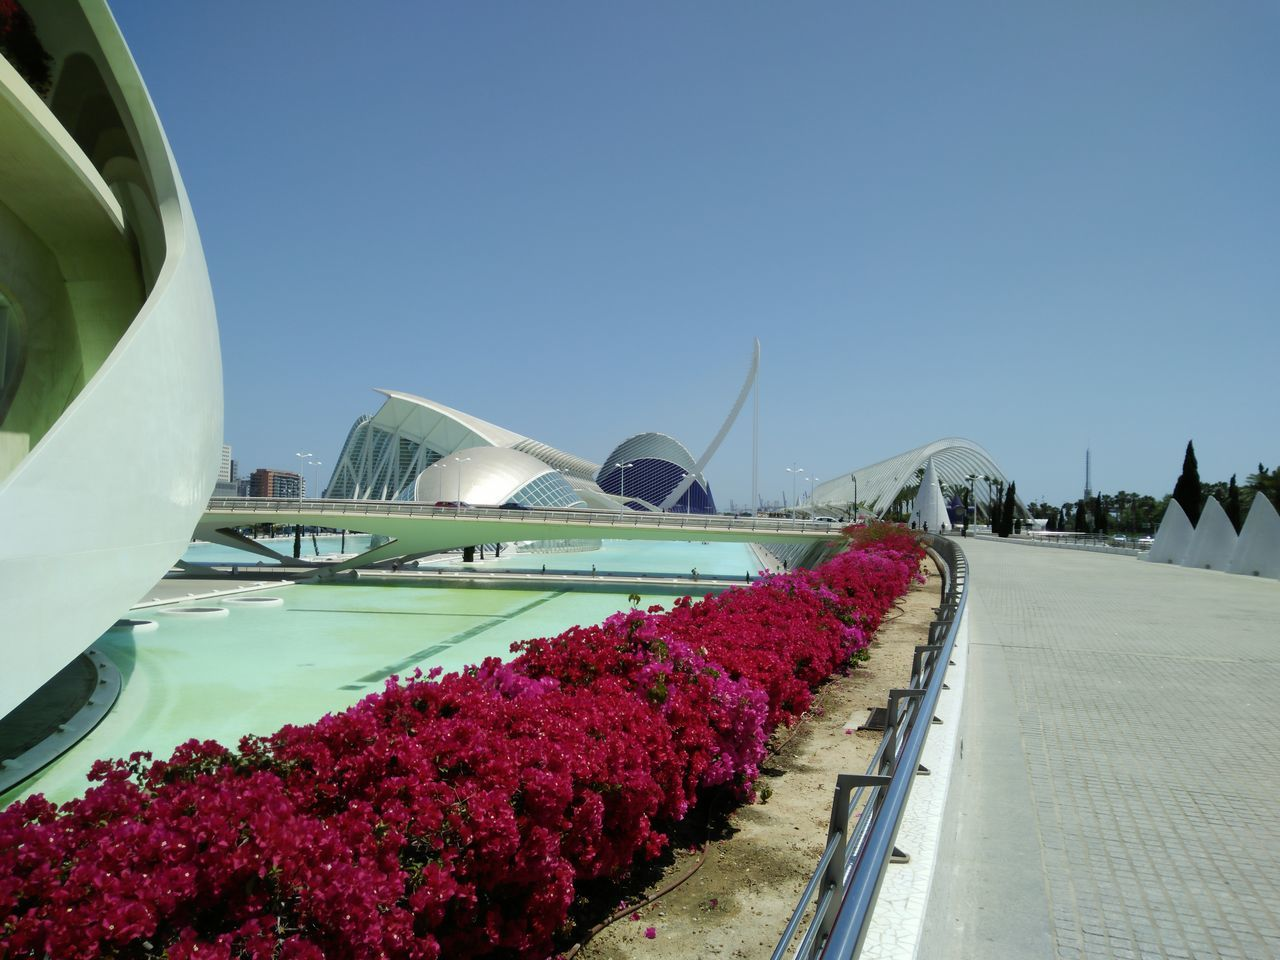 At the Theater in Valencia Alien Theater Architecture Bridge - Man Made Structure City Clear Sky Day Flower Modern Nature No People Outdoors Sky Theater Valencia Valencia Travel Valencia, Spain